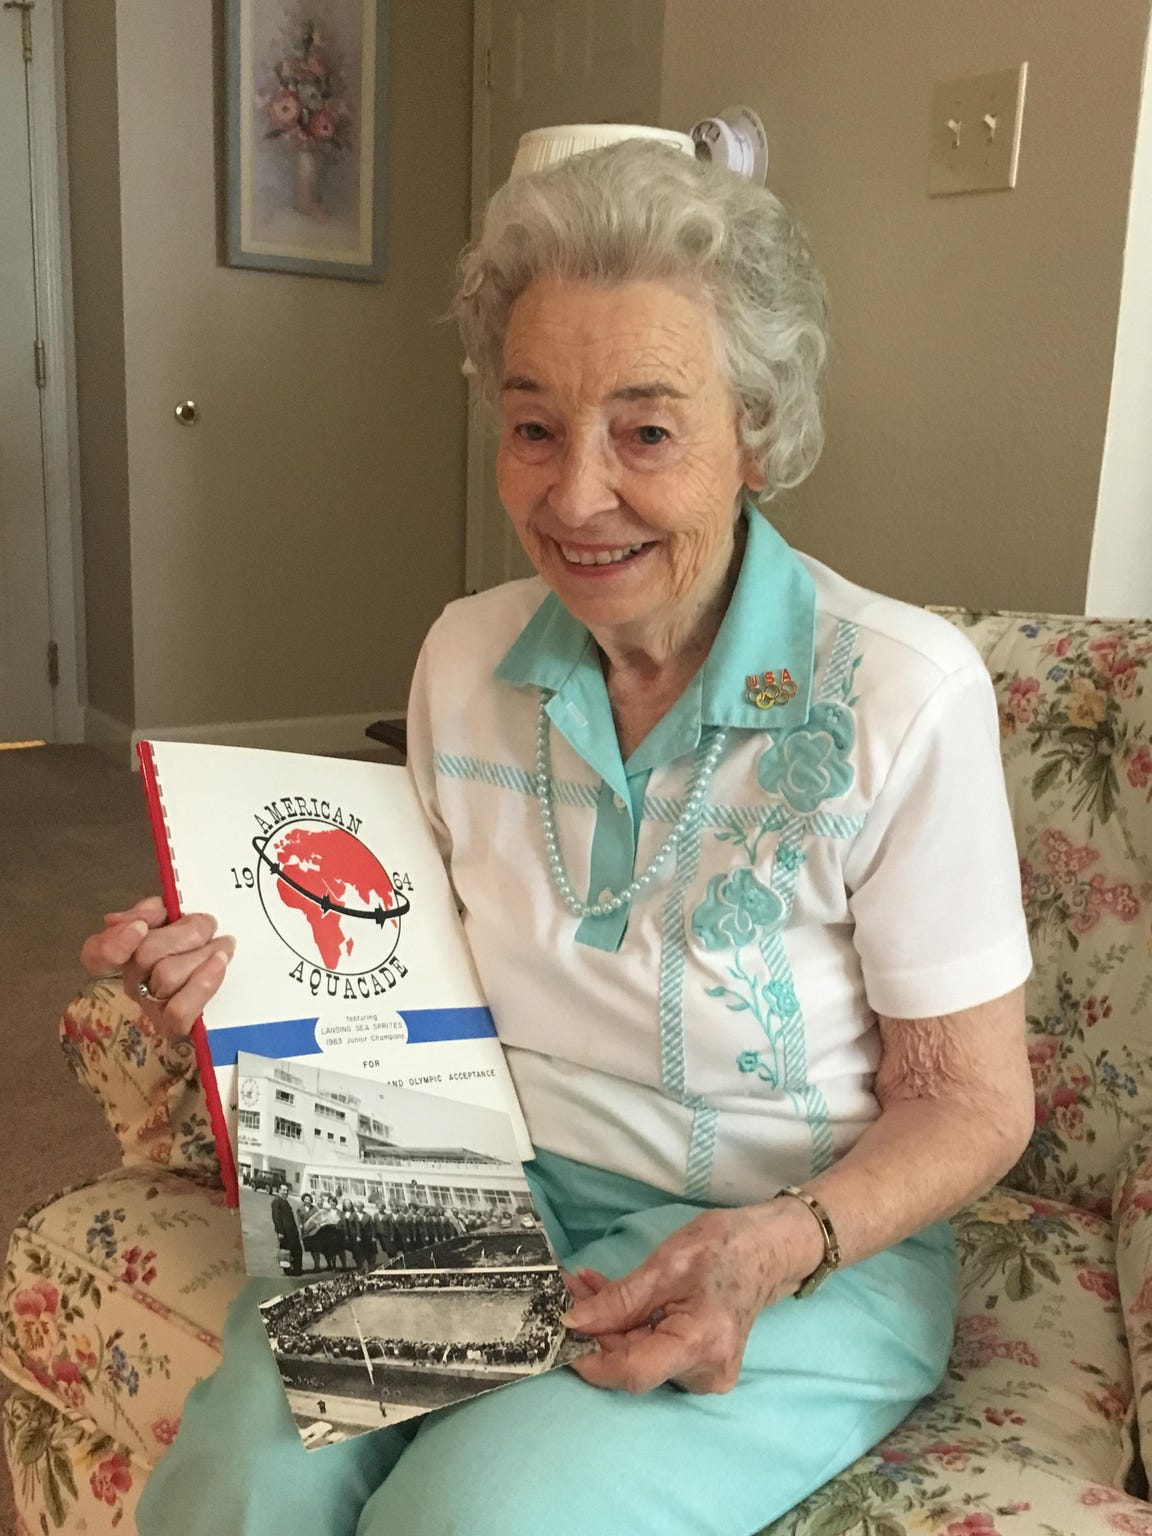 Frances Jones, 91, with some memorabilia from the 1964 world tour she took with the Lansing Sea Sprites.